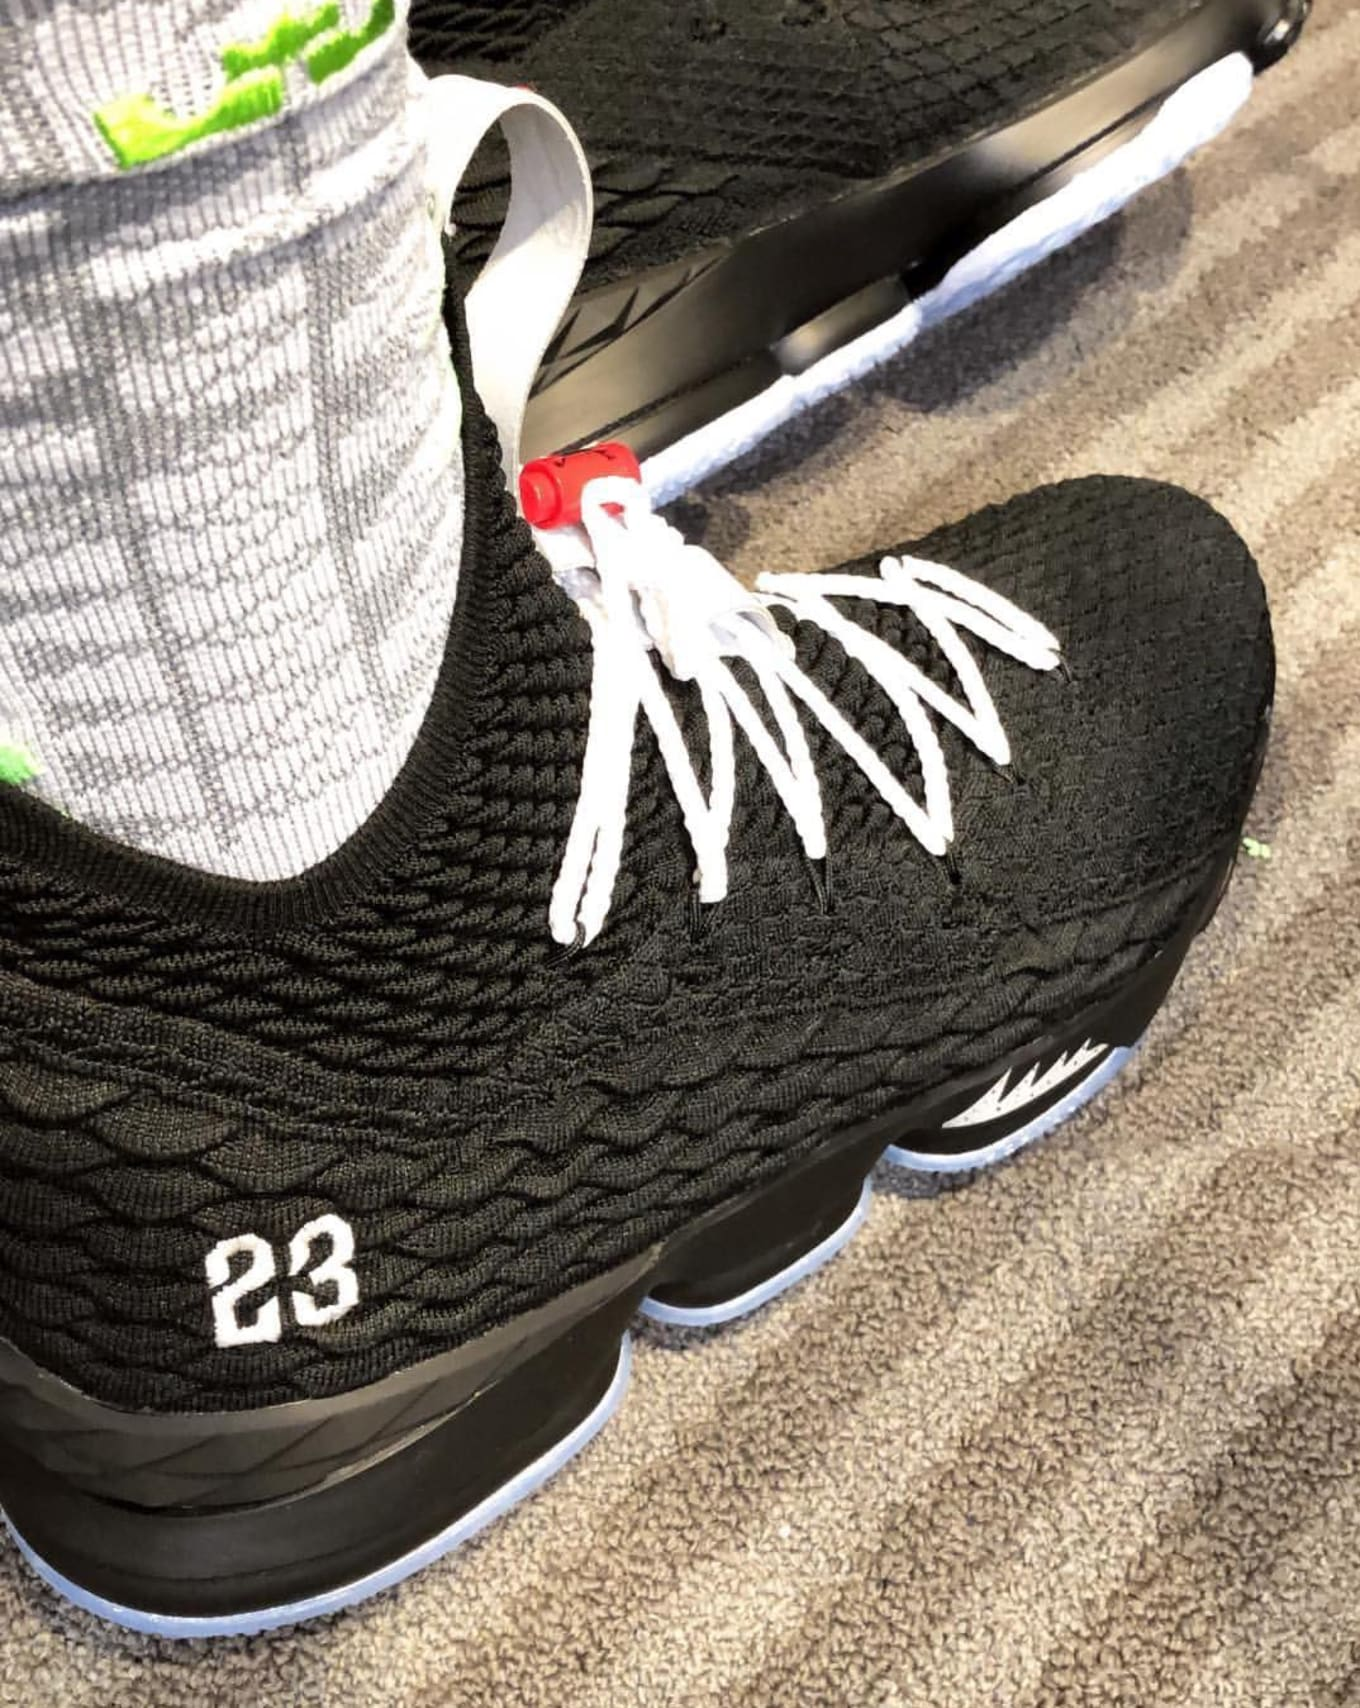 606e7aff2dd74 LeBron James Pays Tribute to Michael Jordan with Special Sneakers